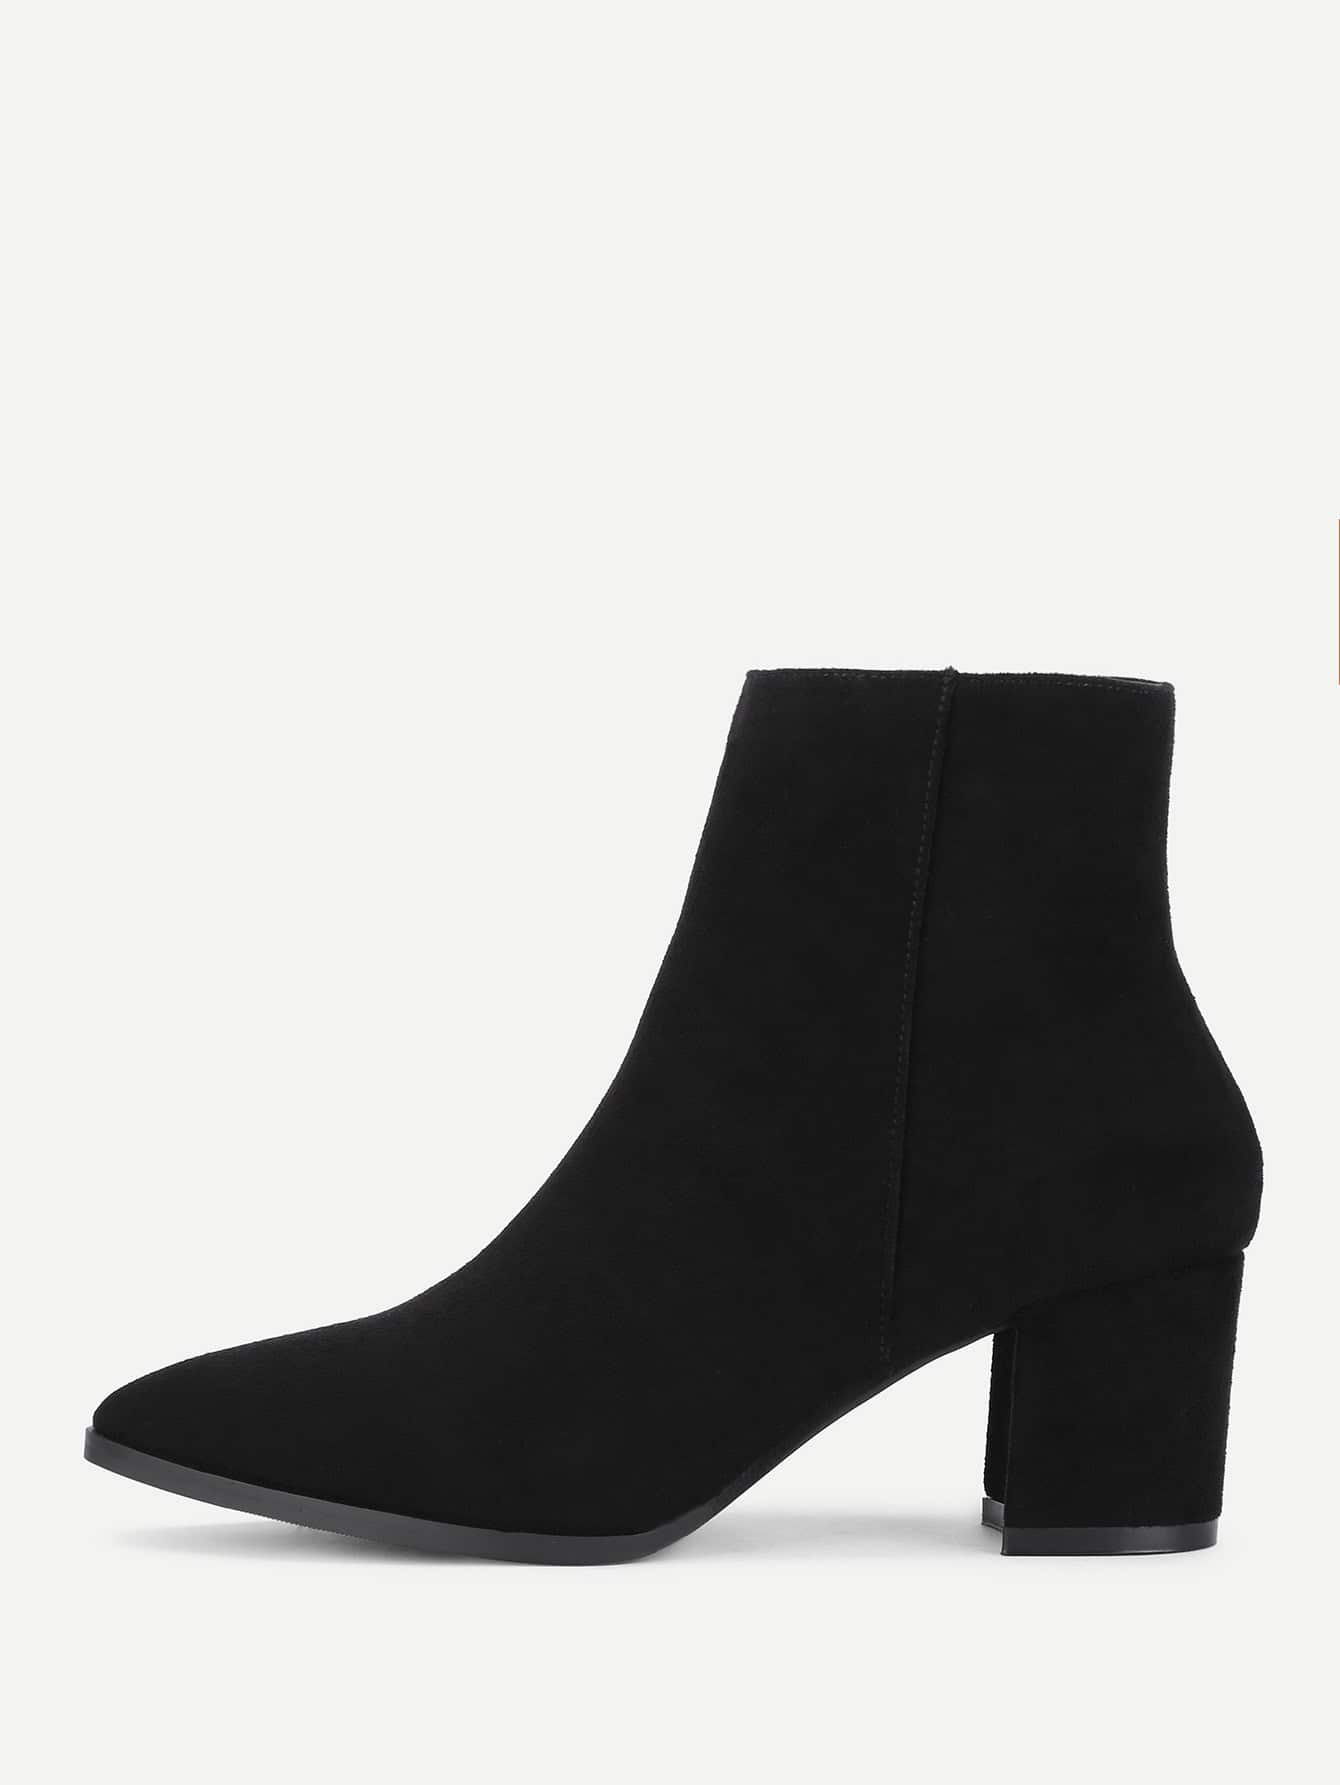 Image of Almond Toe Block Heeled Suede Ankle Boots